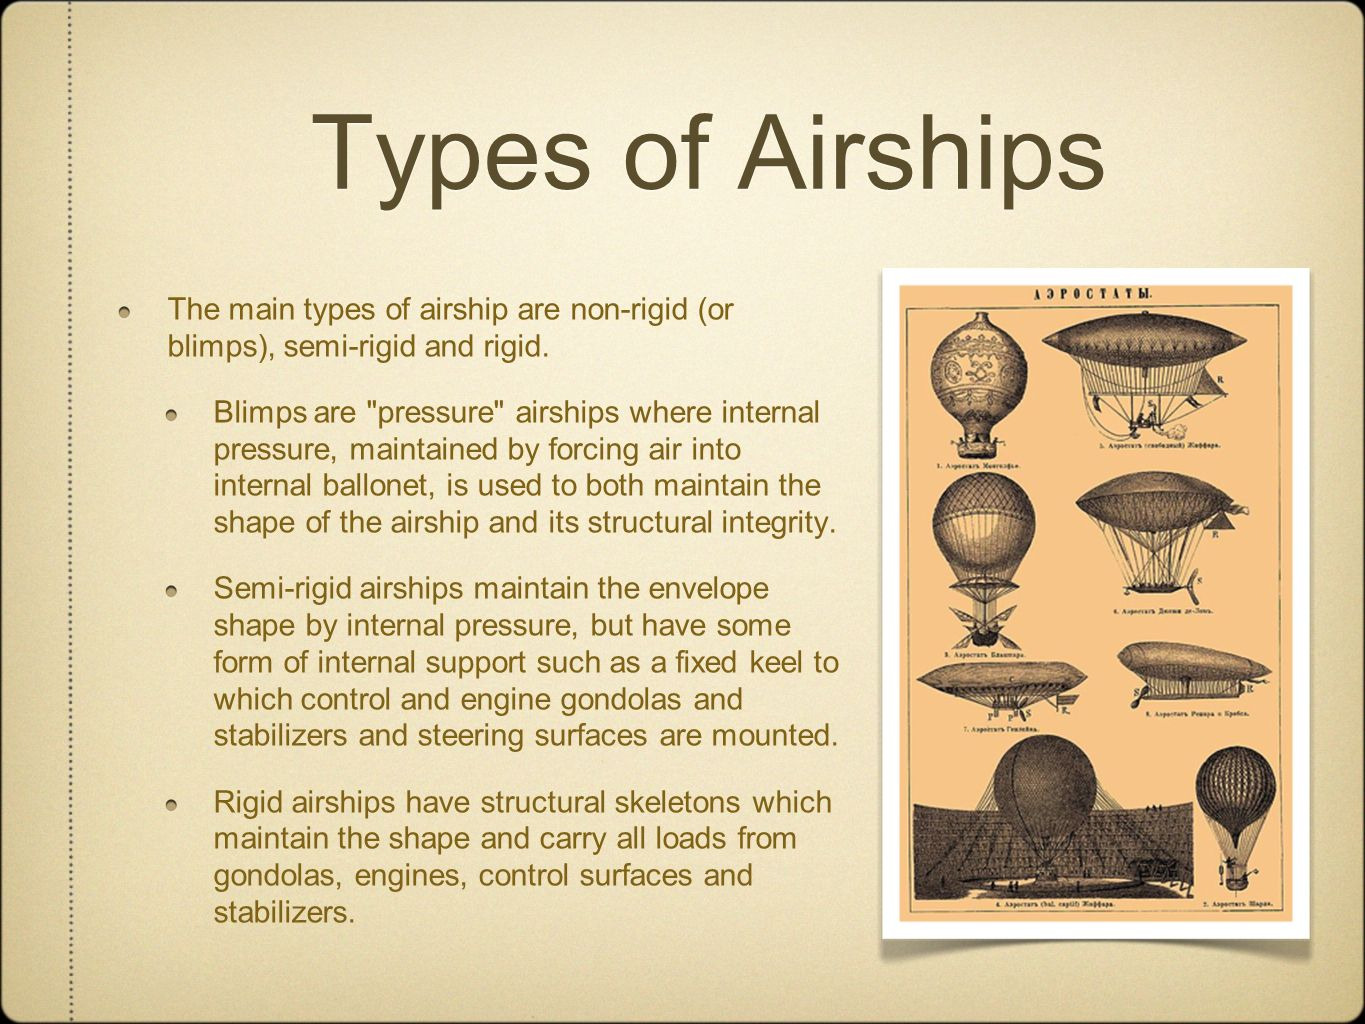 Types of AirshipsThe main types of airship are non-rigid (or blimps), semi-rigid and rigid.